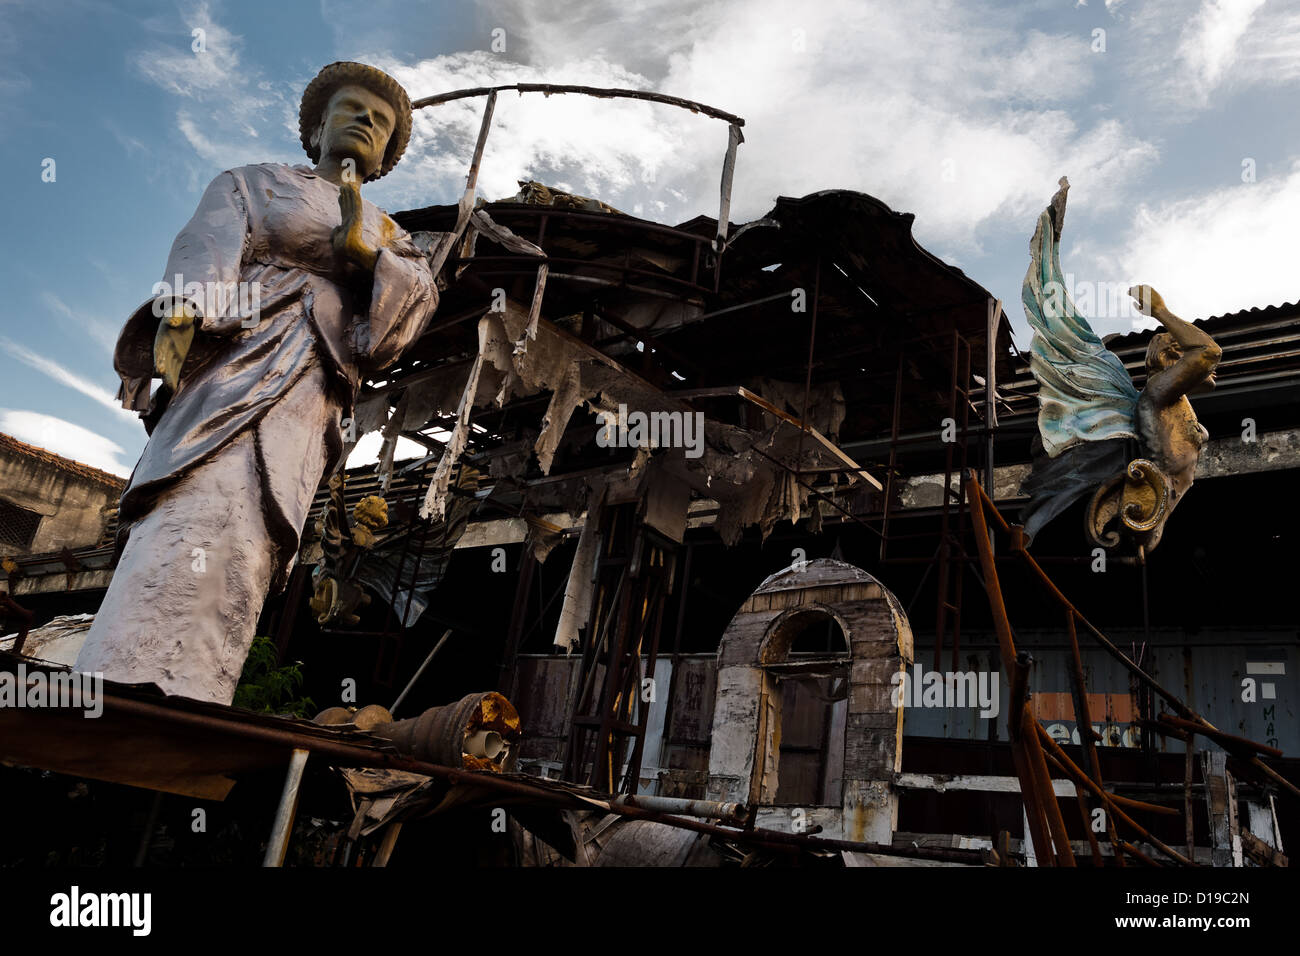 A dismantled and damaged carnival float abandoned on the work yard behind the Samba school workshops in Rio de Janeiro, - Stock Image